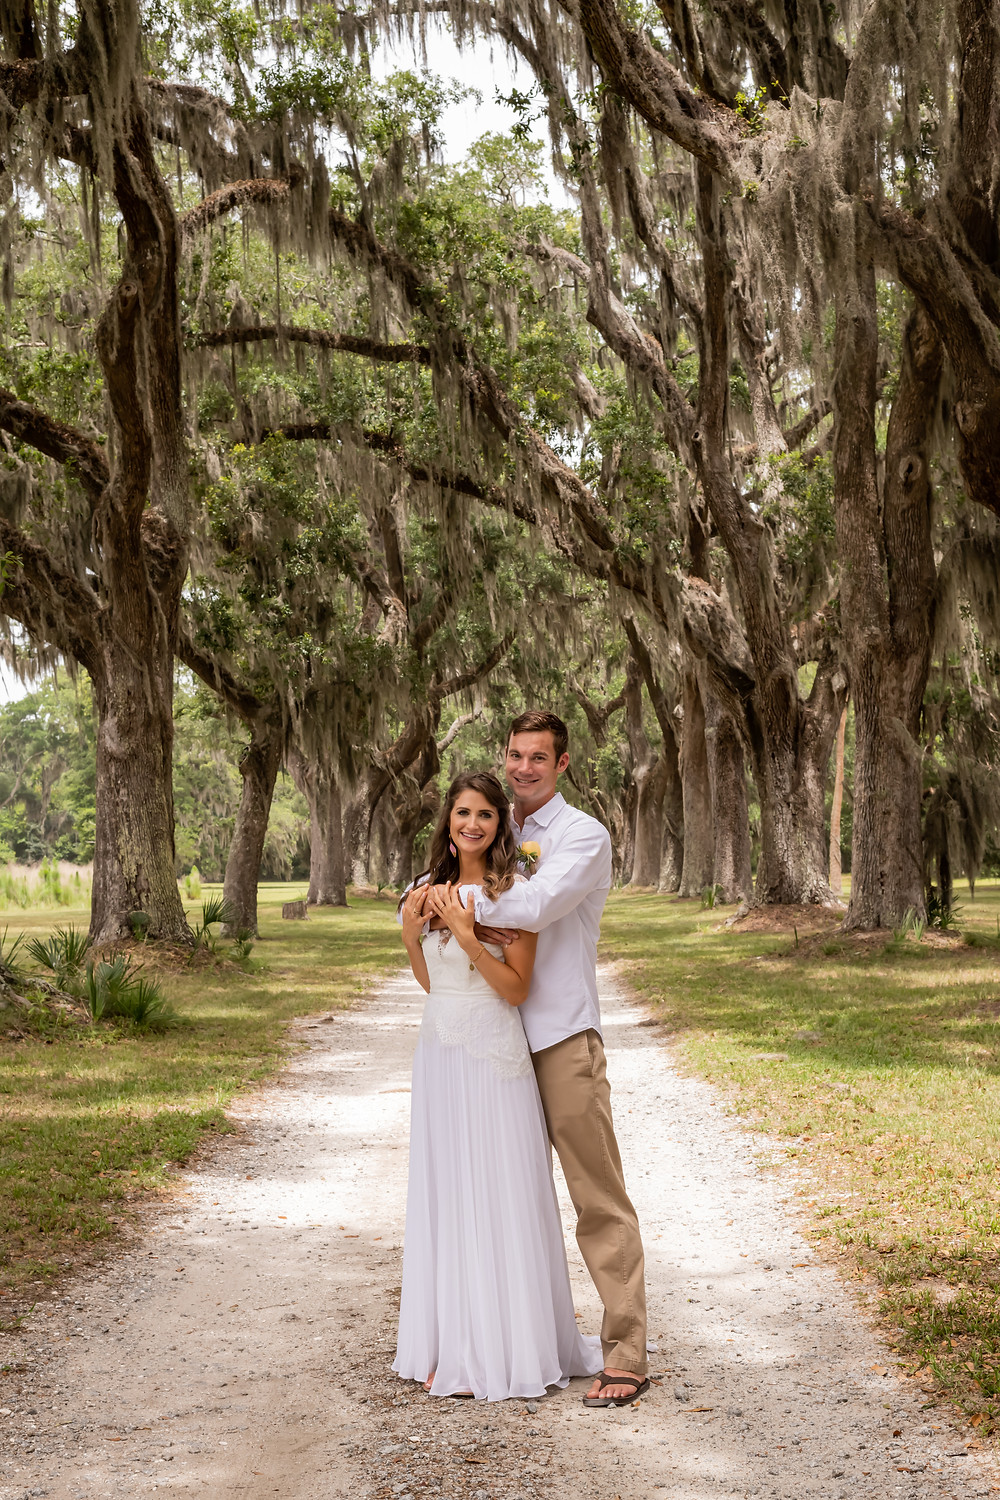 Sagen and Travis get married on a piece of private property in Savannah, Georgia.